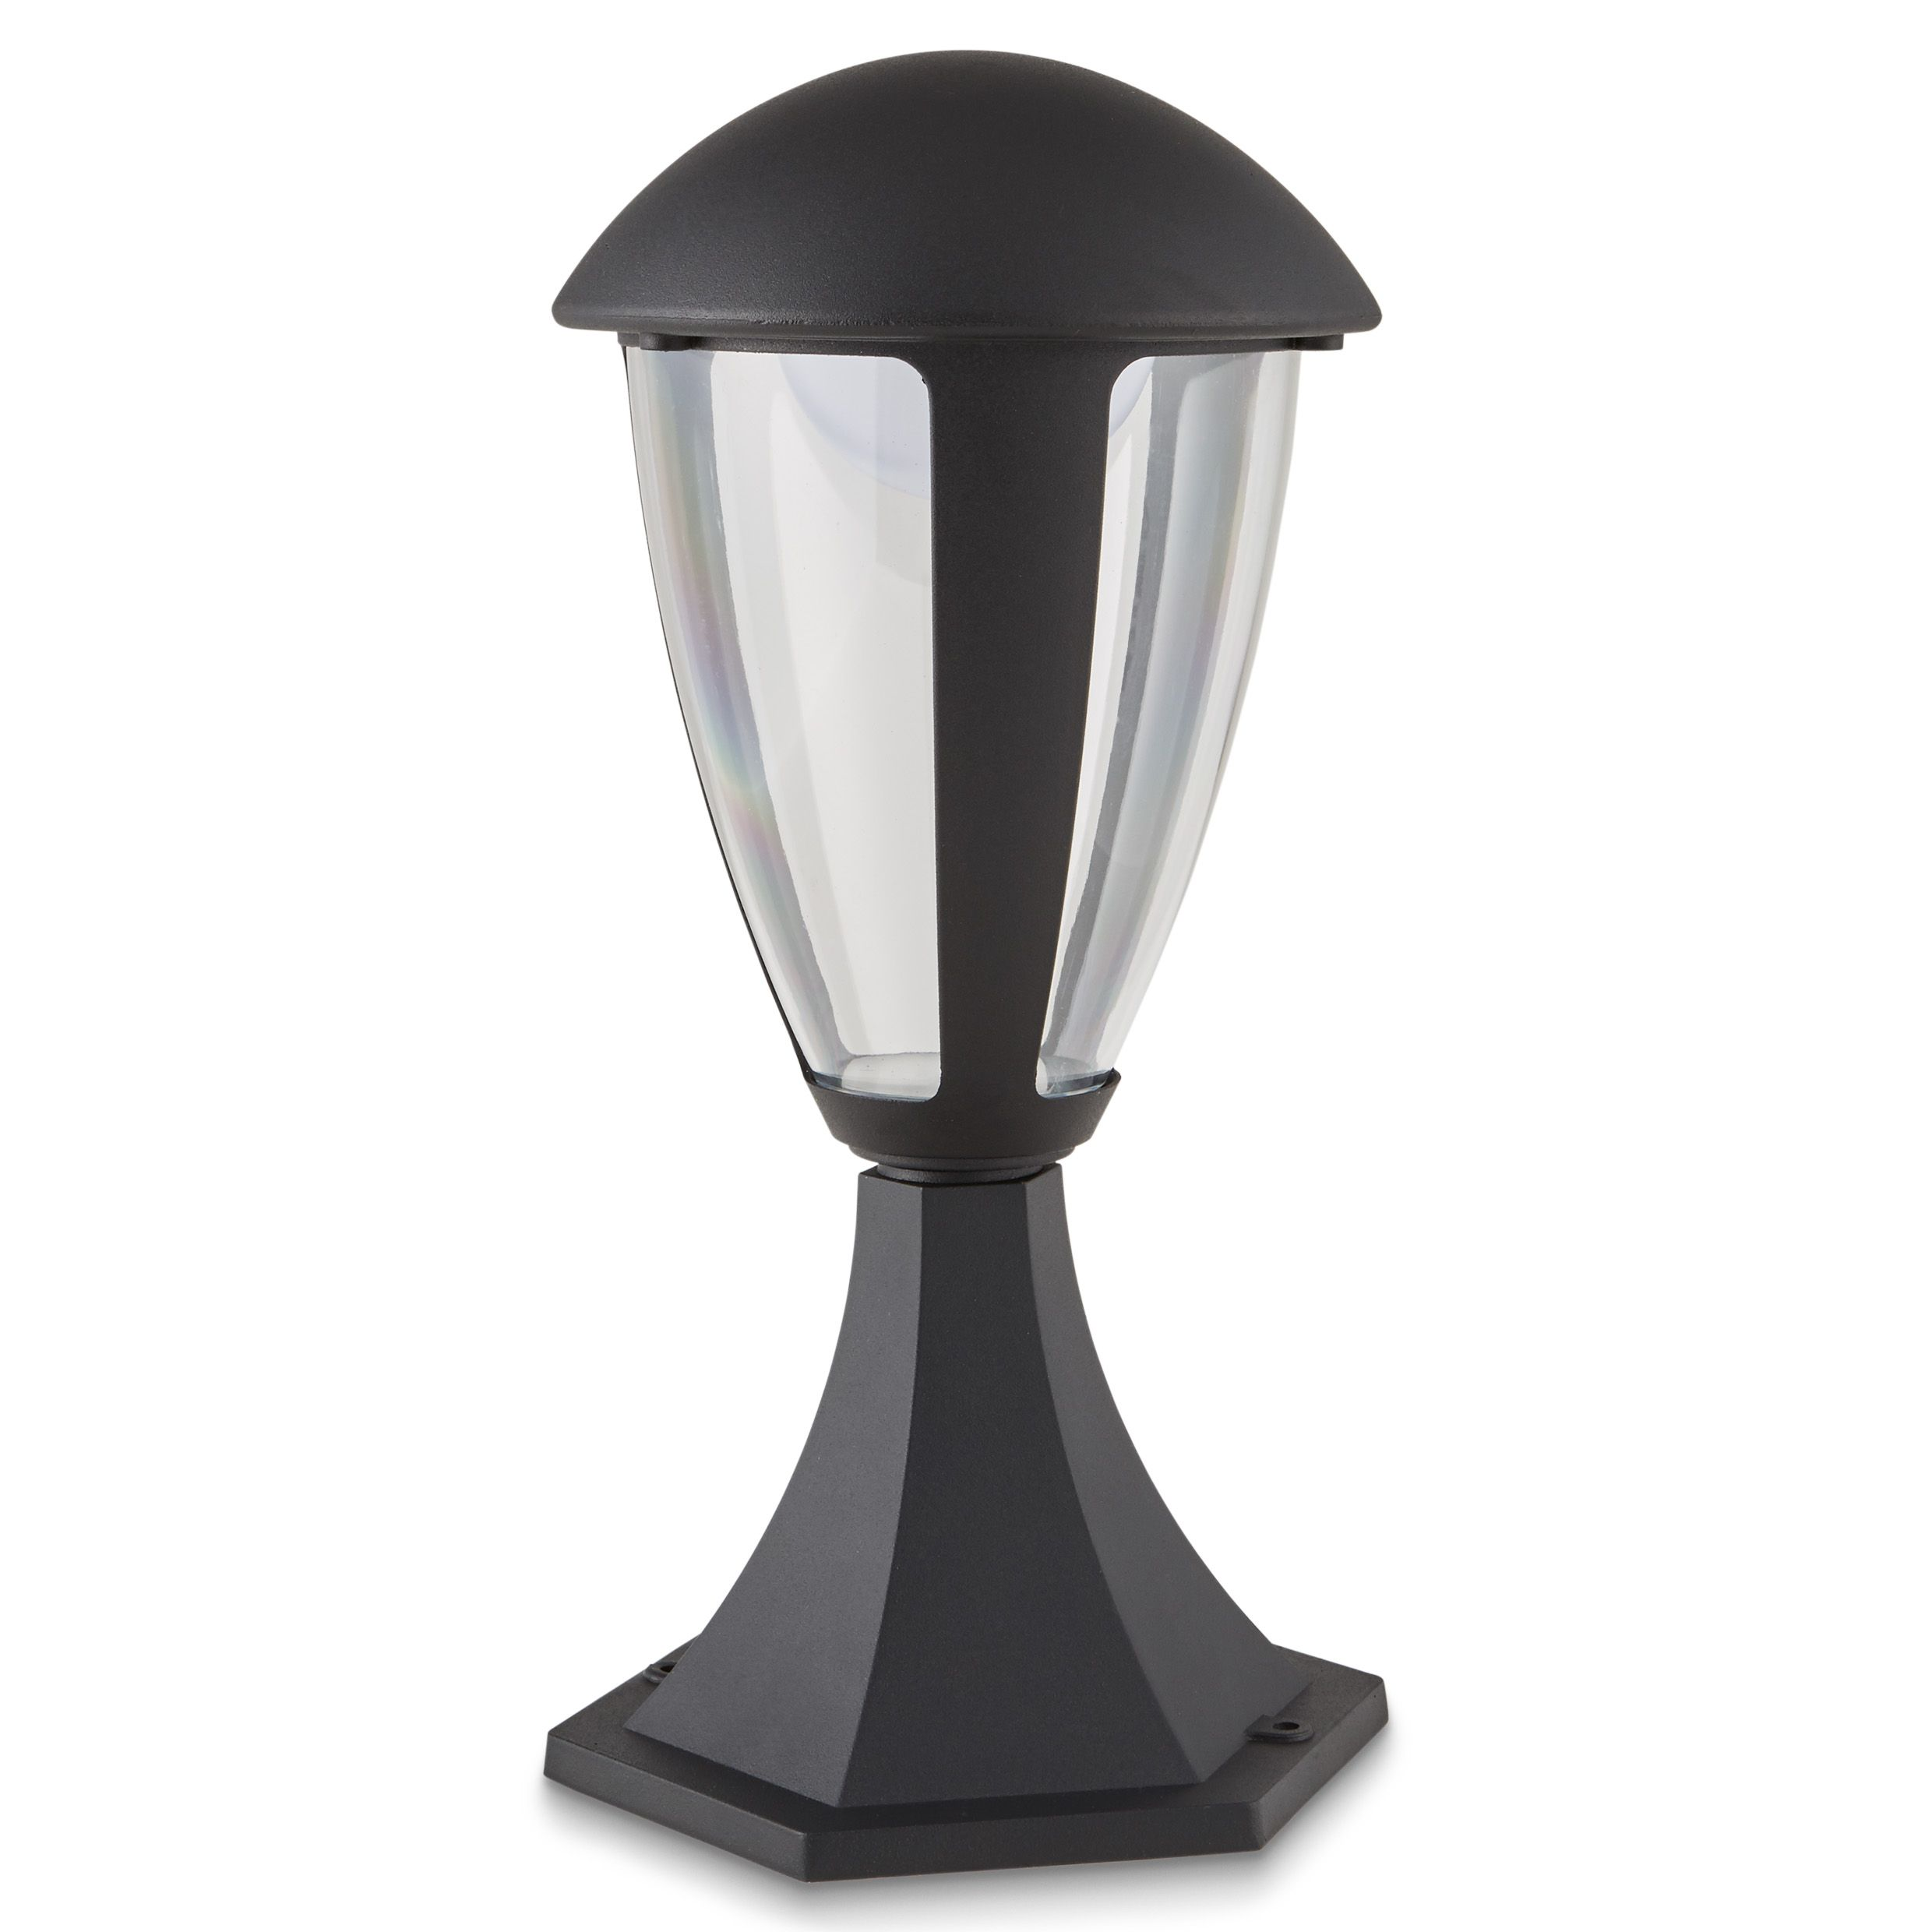 Blooma Fredericton Powder Coated Black Led 4 Faces Post Light